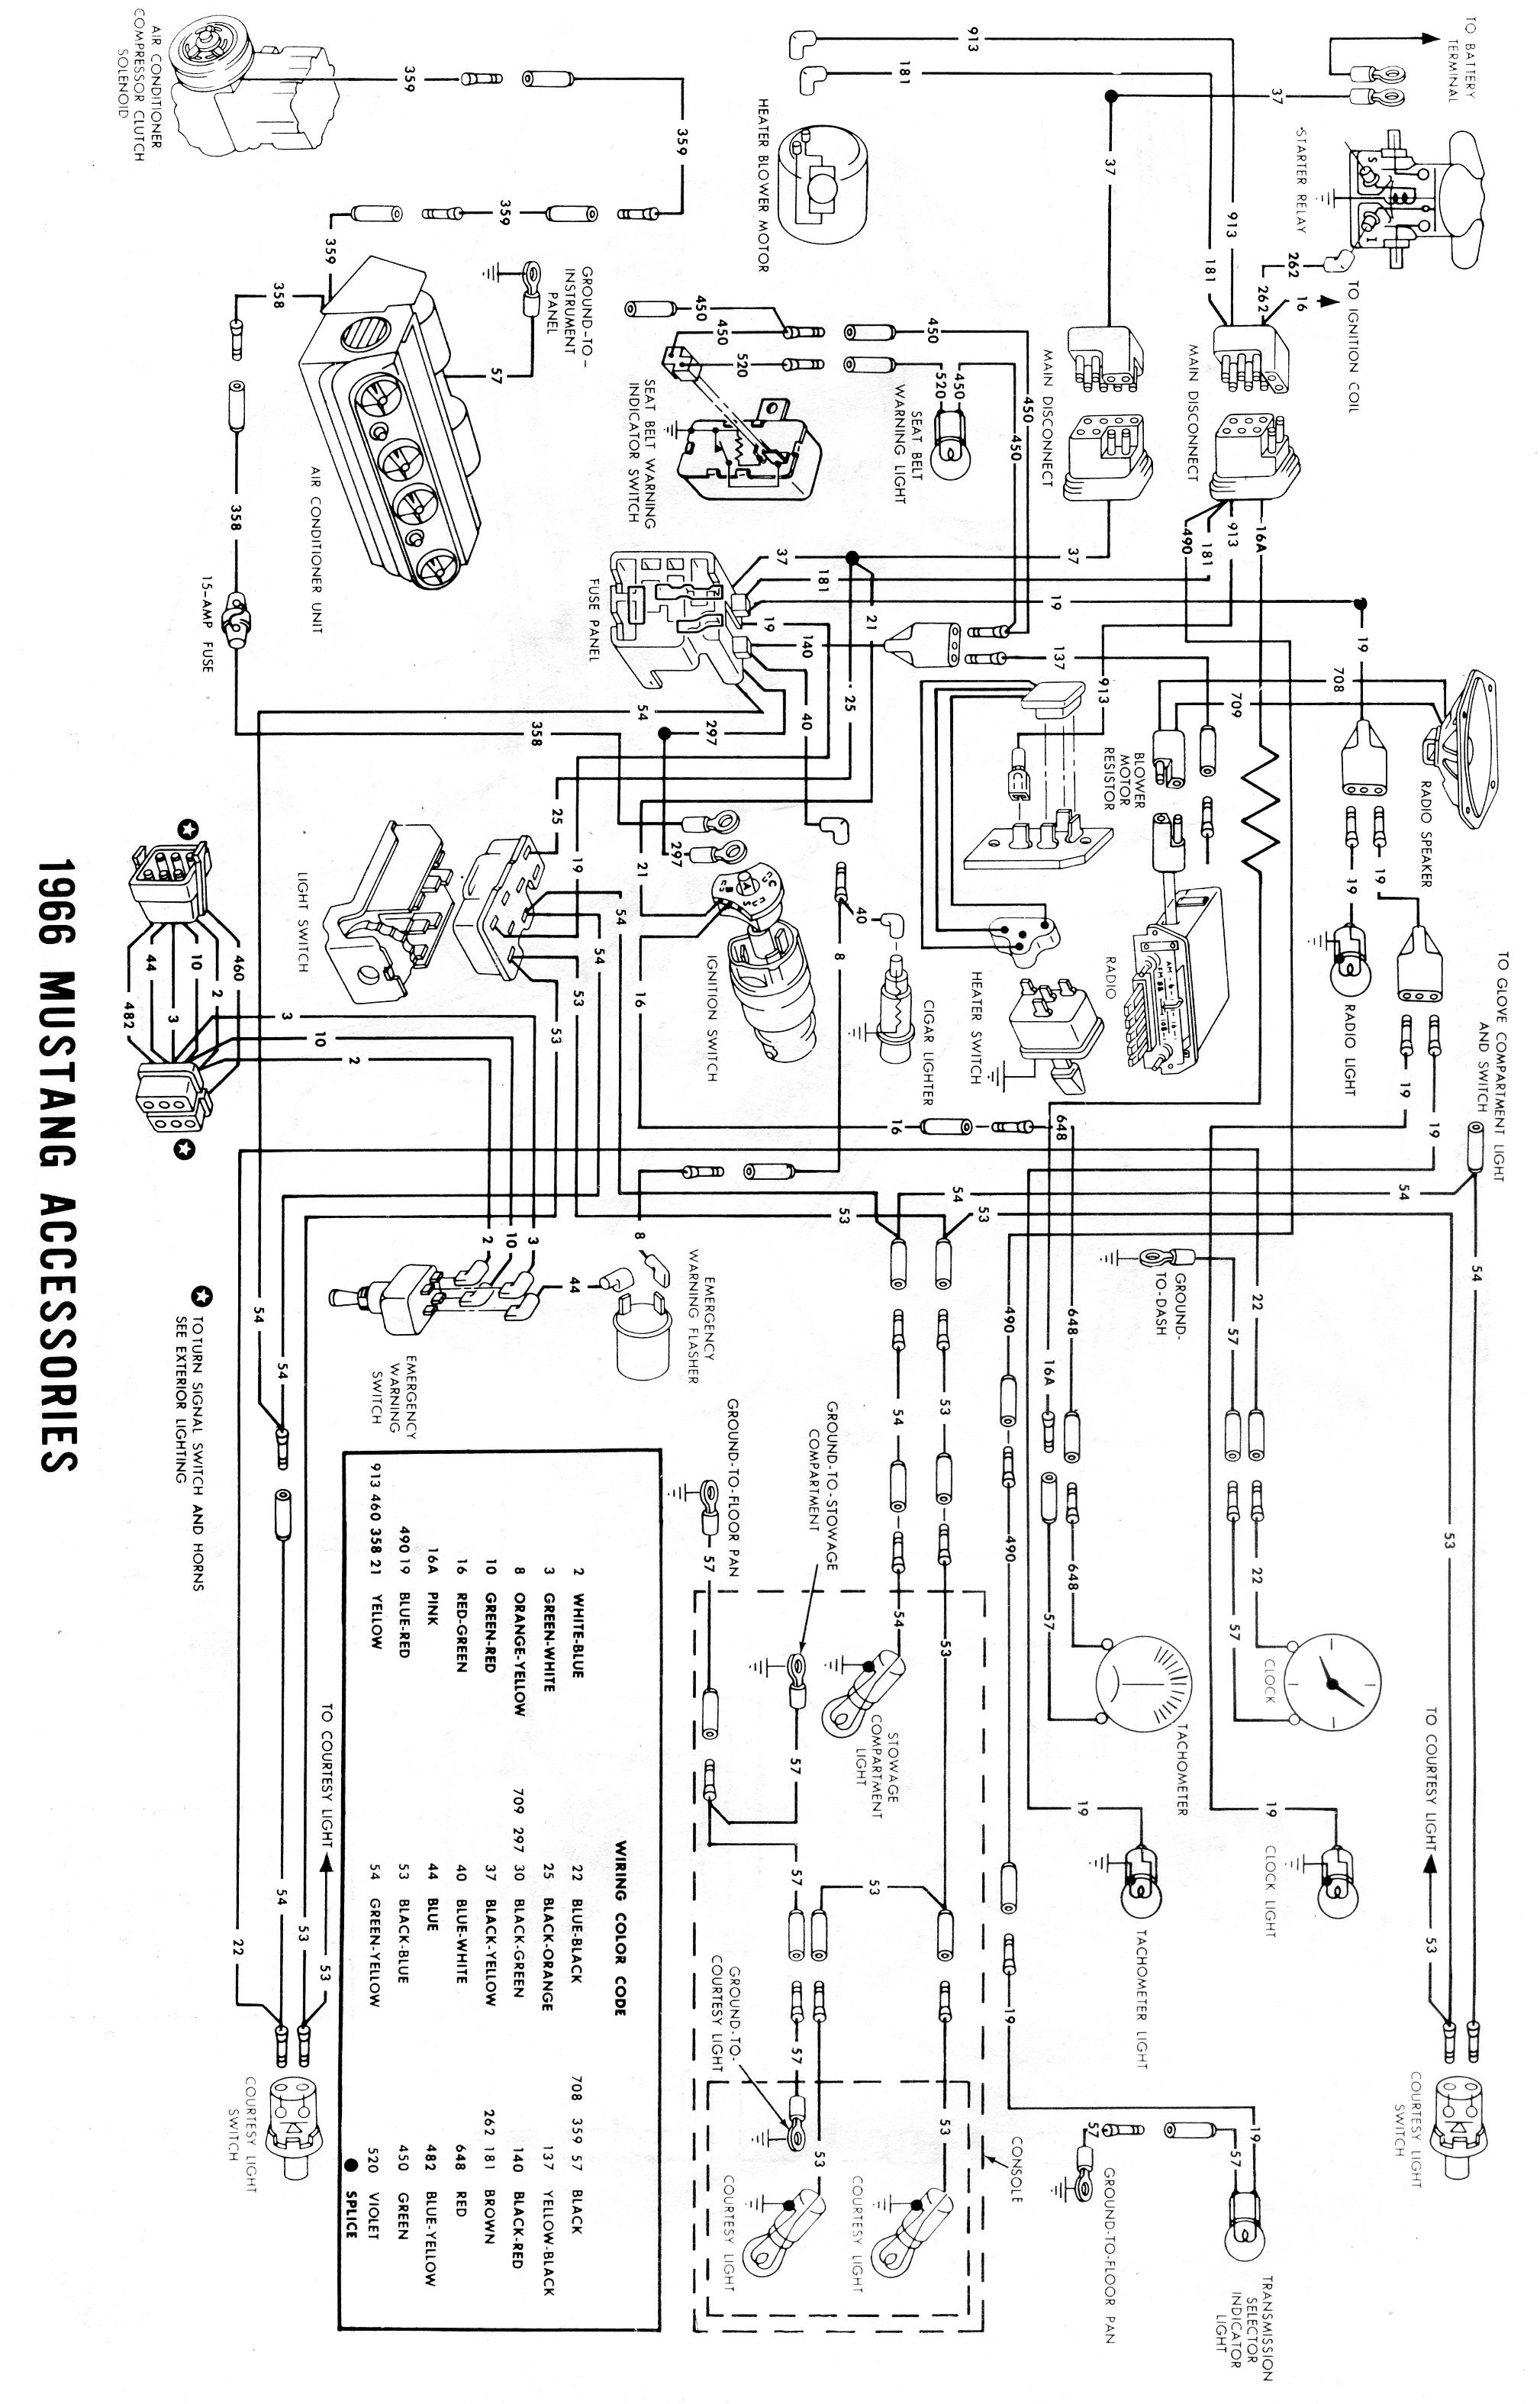 ford clock wiring data wiring diagramsford clock wiring wiring diagram ebook ford headlight switch wiring clock spring audi wiring diagram wiring